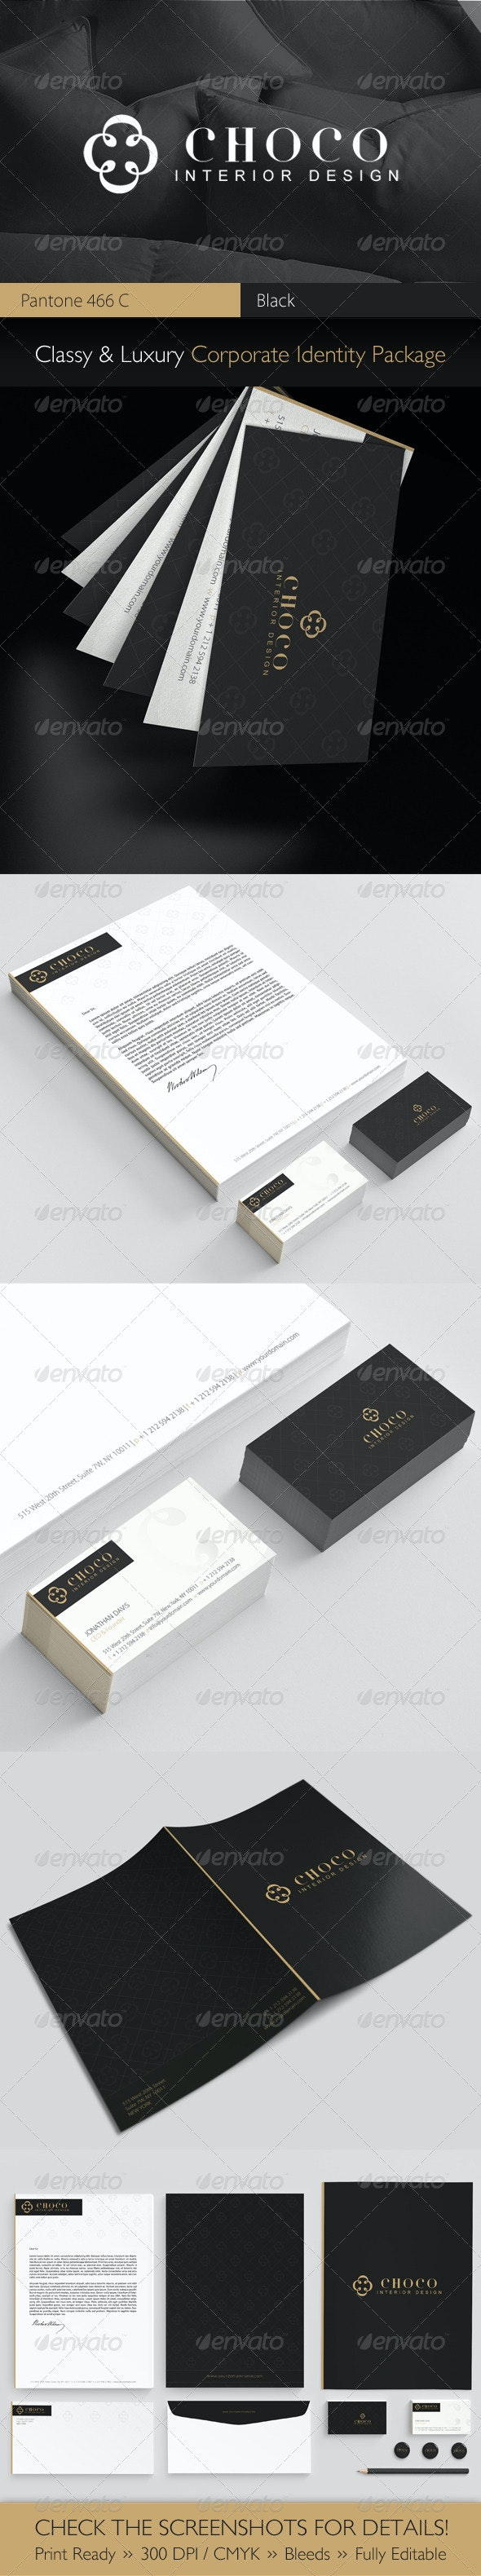 Choco Luxury Corporate Identity Package  - Stationery Print Templates